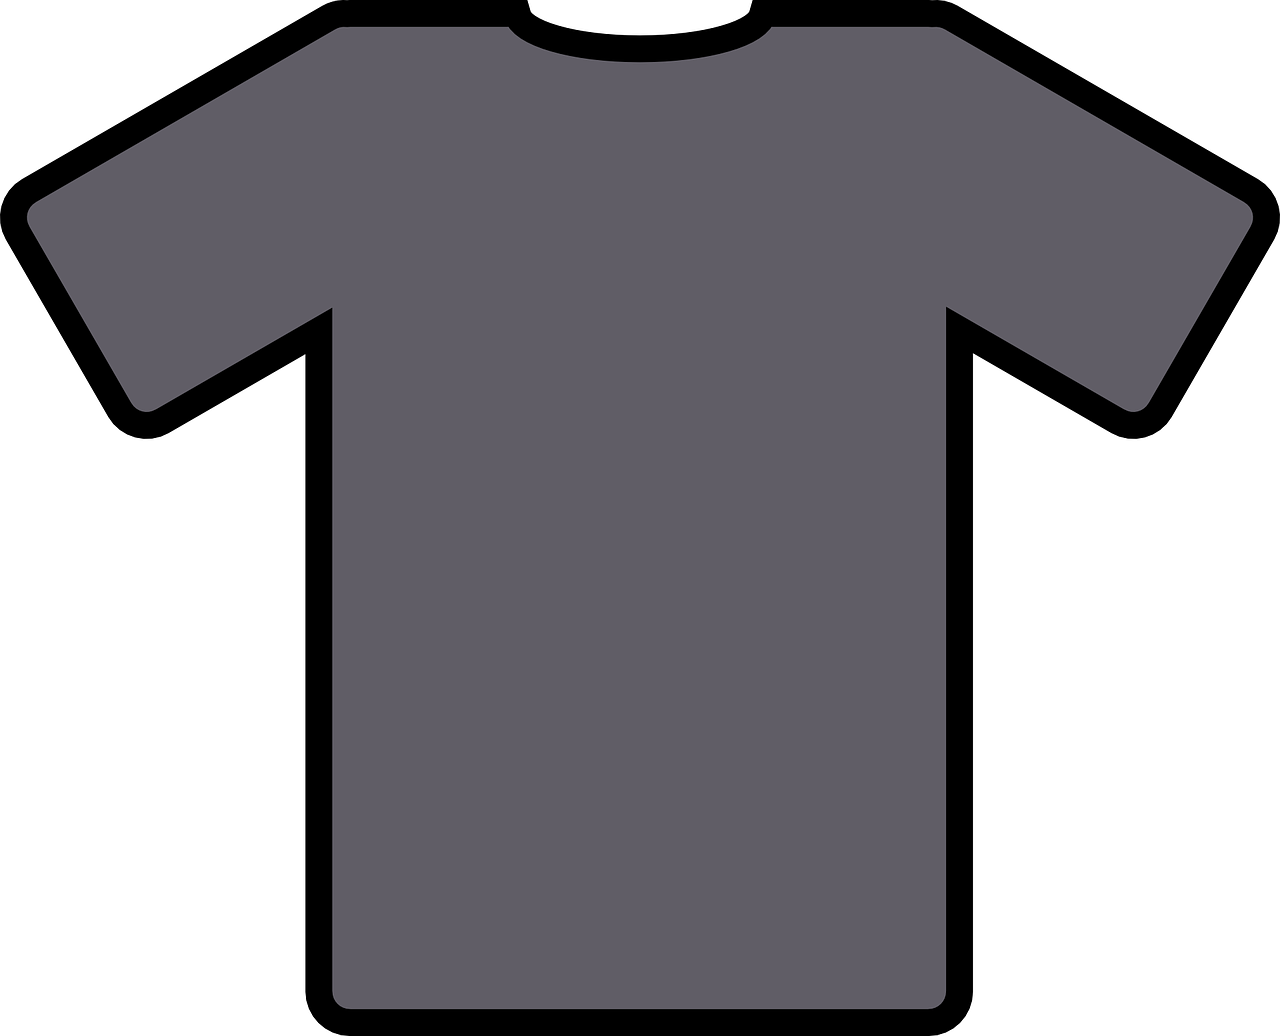 t-shirt grey clothing free photo